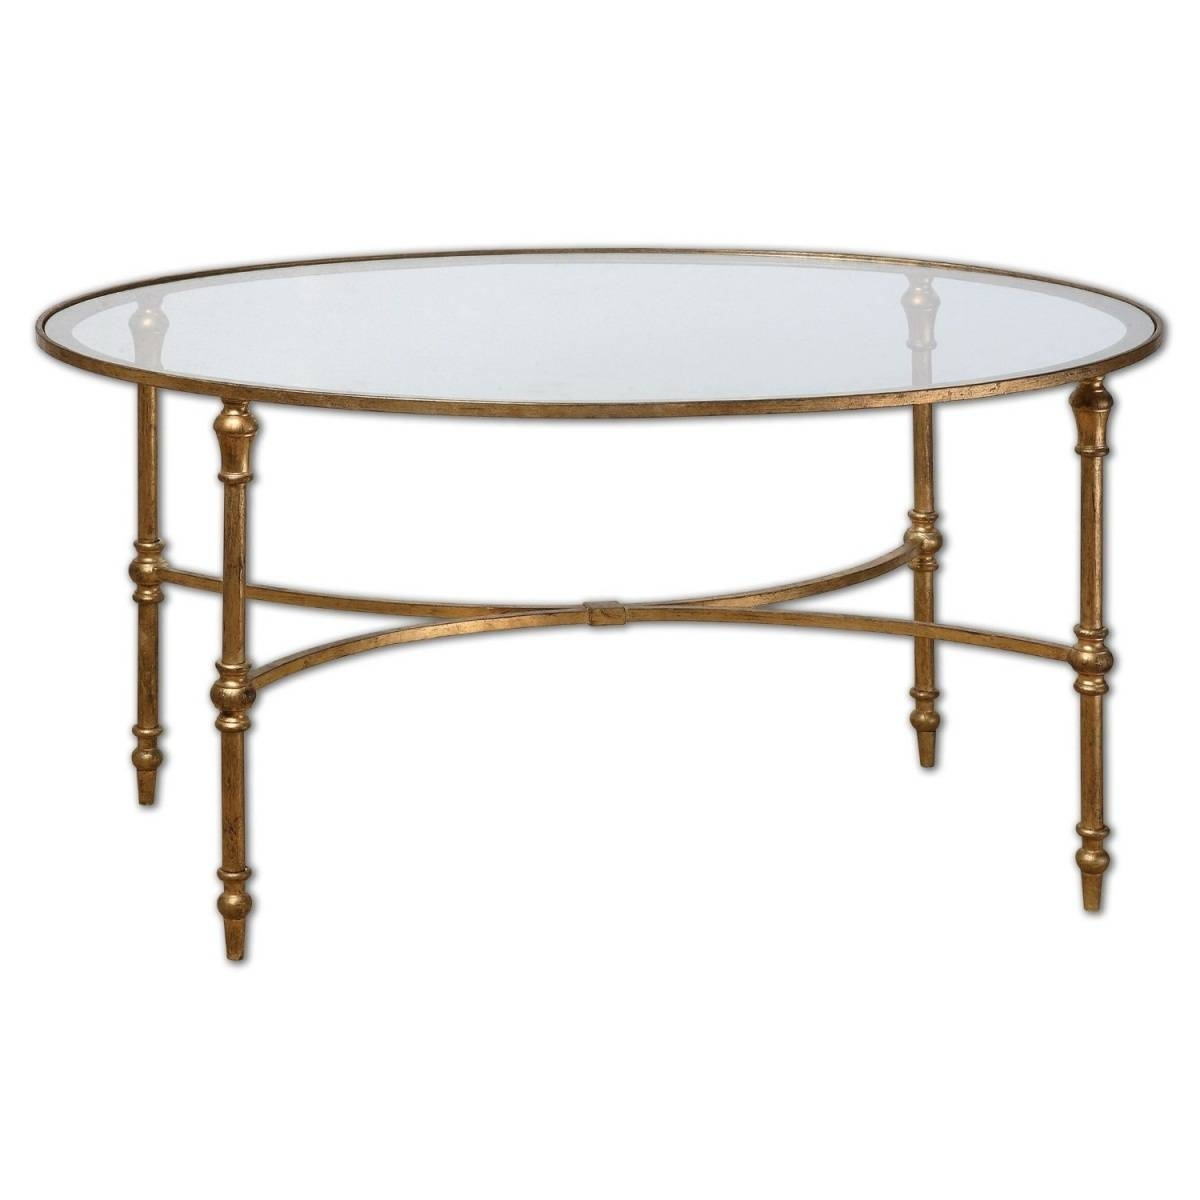 Images Of Round Glass Top Coffee Tables | Coffee Tables Decoration within Coffee Tables Metal And Glass (Image 24 of 30)